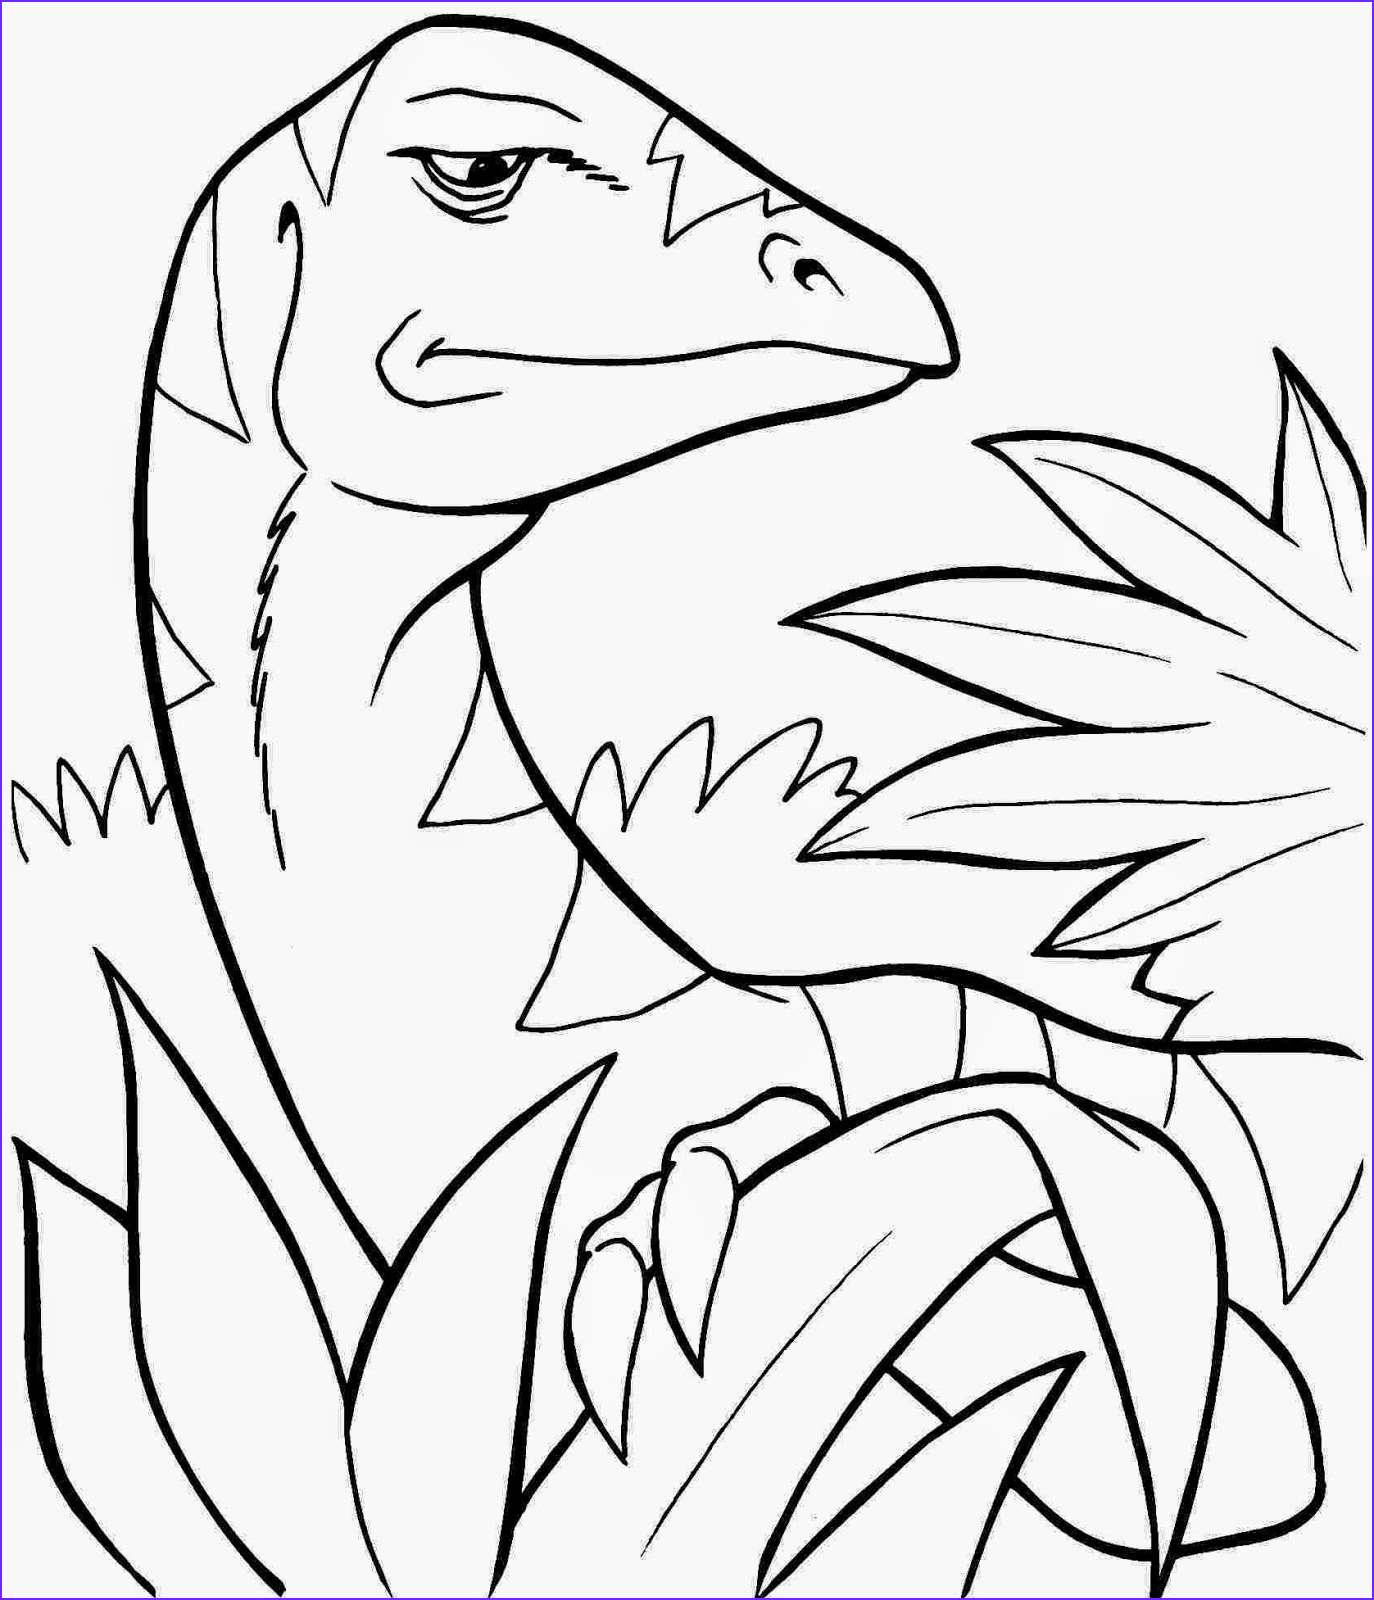 Dinosaur Coloring Pages Beautiful Gallery Coloring Pages Dinosaur Free Printable Coloring Pages